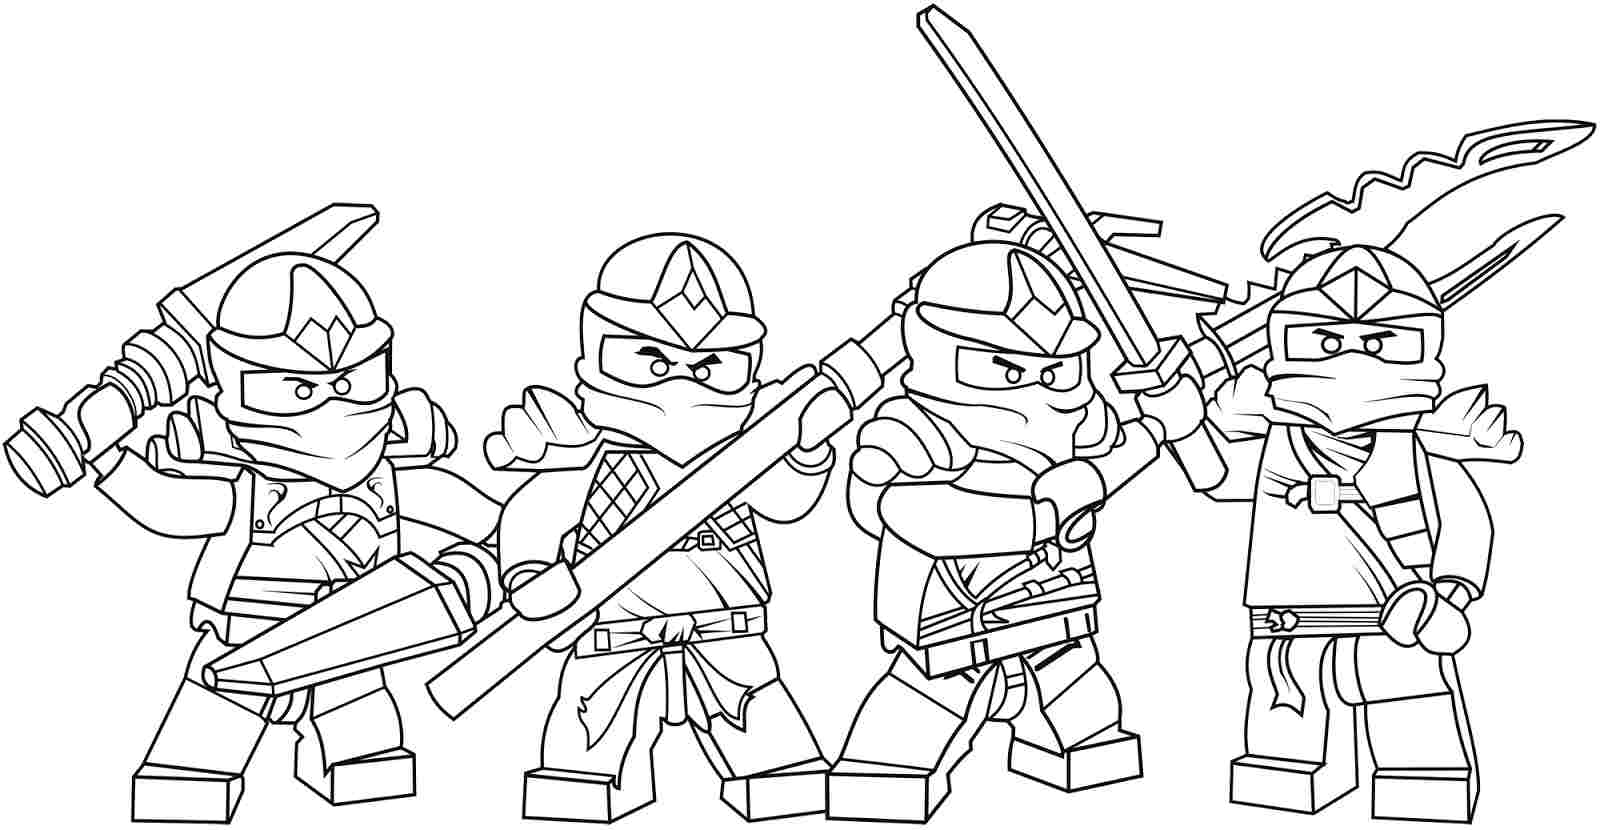 skylanders dragon coloring pages as well Ninjago coloring pages 2 in addition aiqbbG57T in addition aTqbb9n8c as well kiMKbgeij moreover ninjago coloring books printable pages also 1469295644lego ninjago jay furthermore cebd033321f8c9eb7f2a182b3905afdb besides  also 4ib4xnGbT besides BTgz6gRT8. on ninjago coloring pages for adults